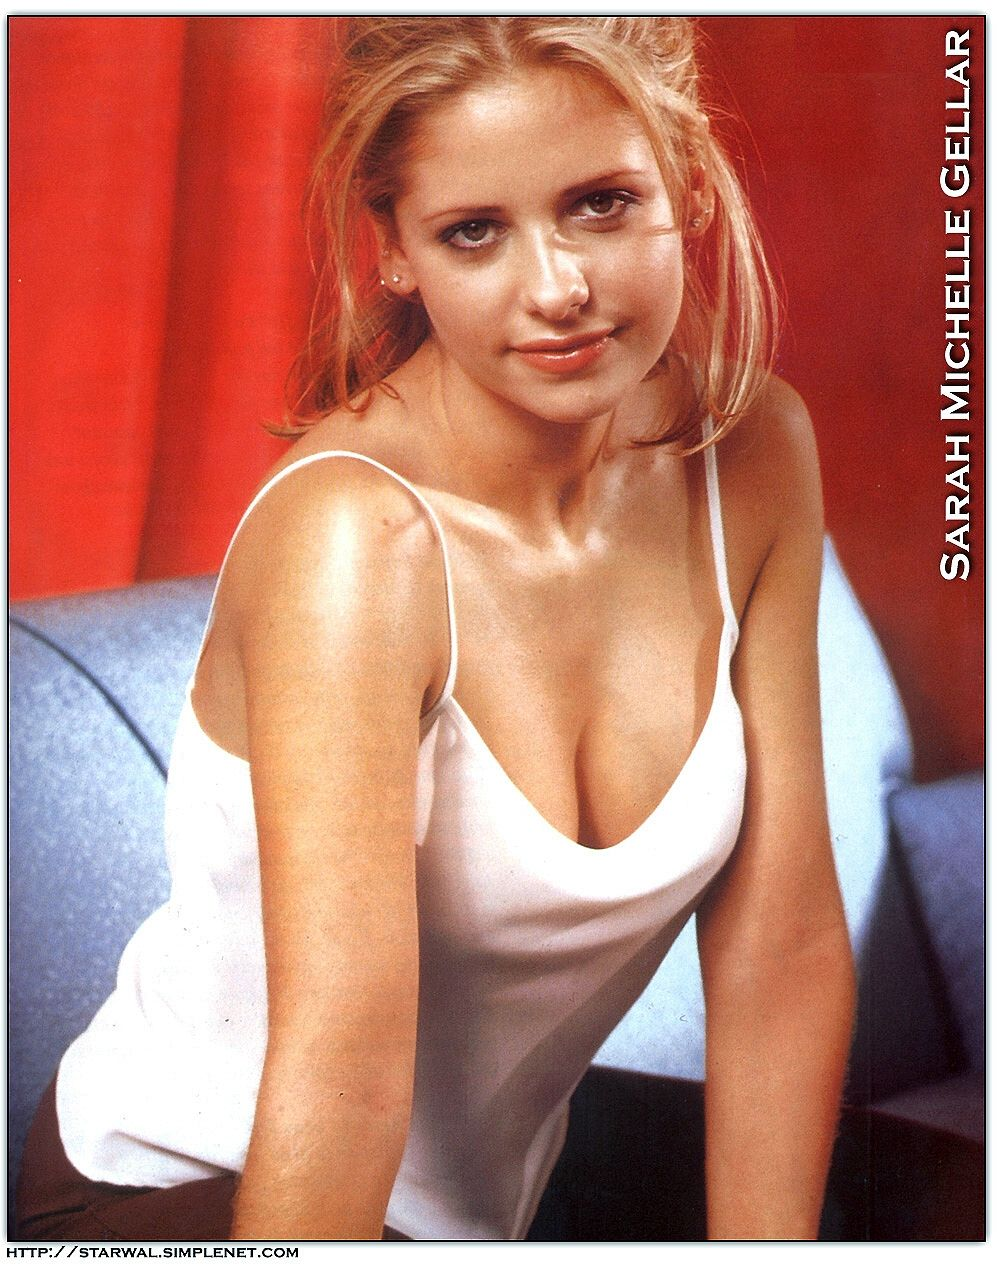 Sarah Michelle Gellar | Scoobypedia | FANDOM powered by Wikia